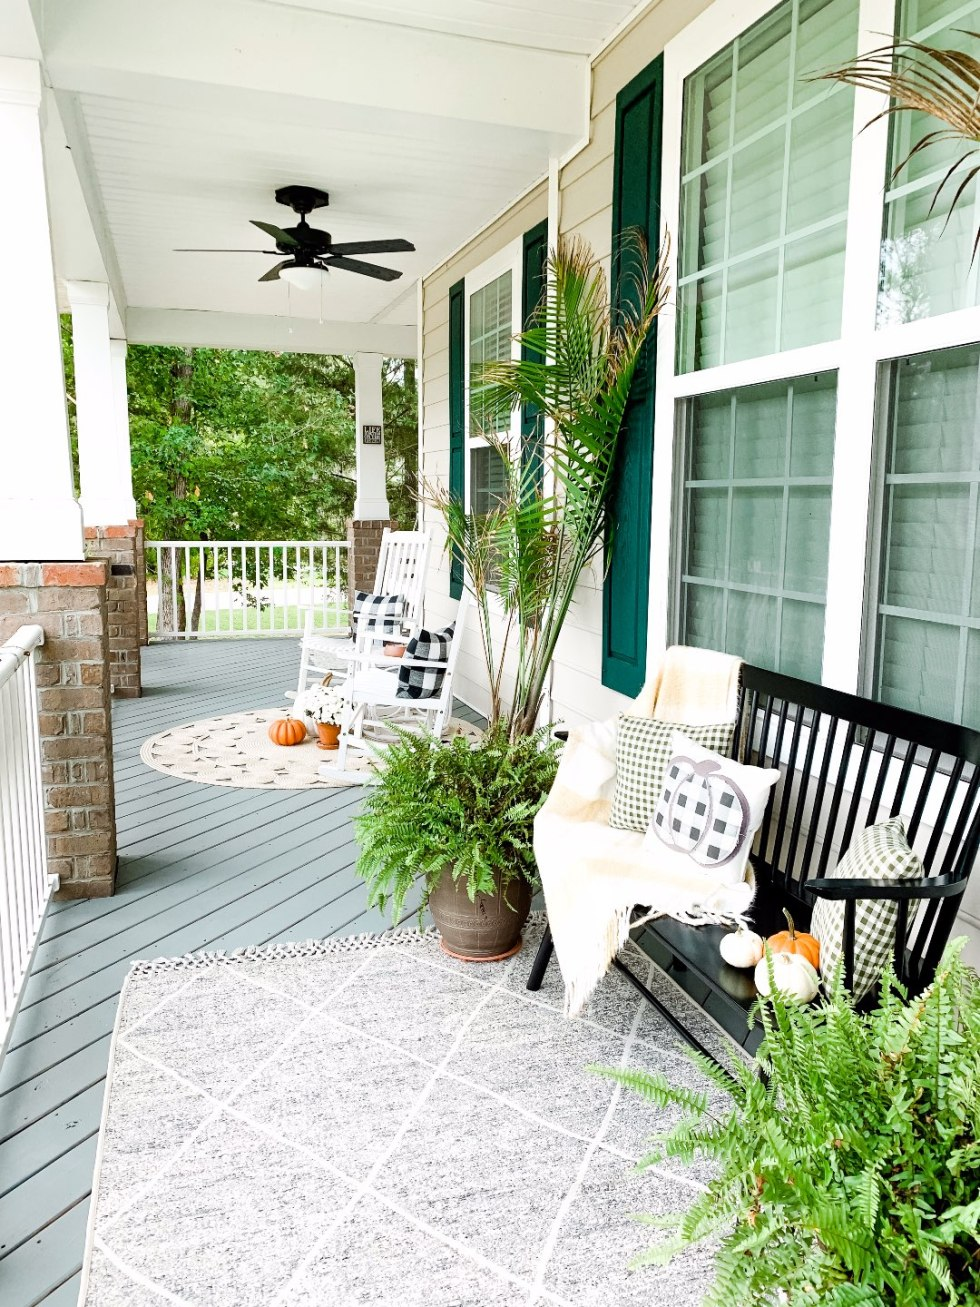 "Our Inviting and Cozy Fall Front Porch Decor Ideas - I'm Fixin' To - @mbg0112 | Our Inviting and Cozy Fall Front Porch Decor Ideas by popular North Carolina lifestyle blog, I'm Fixin' To: image of a front porch decorated with a Target Opalhouse Desert Hatch Outdoor Rug Gray, Amazon Jerimiah Spindleback BenchAmazon 4TH Emotion Set of 2 Farmhouse Buffalo Check Plaid Throw Pillow Covers, Target Smith and Hacken 12"" Iron Galvanized Planters, Target Threshold 22"" Artificial Berry Wreath White, pumpkins, Target Smart Living San Rafael II 15"" LED Solar Mission Outdoor Lanterns, Hayneedle Coral Coast Indoor/Outdoor Mission Slat Rocking Chairs, mums, and green plants."